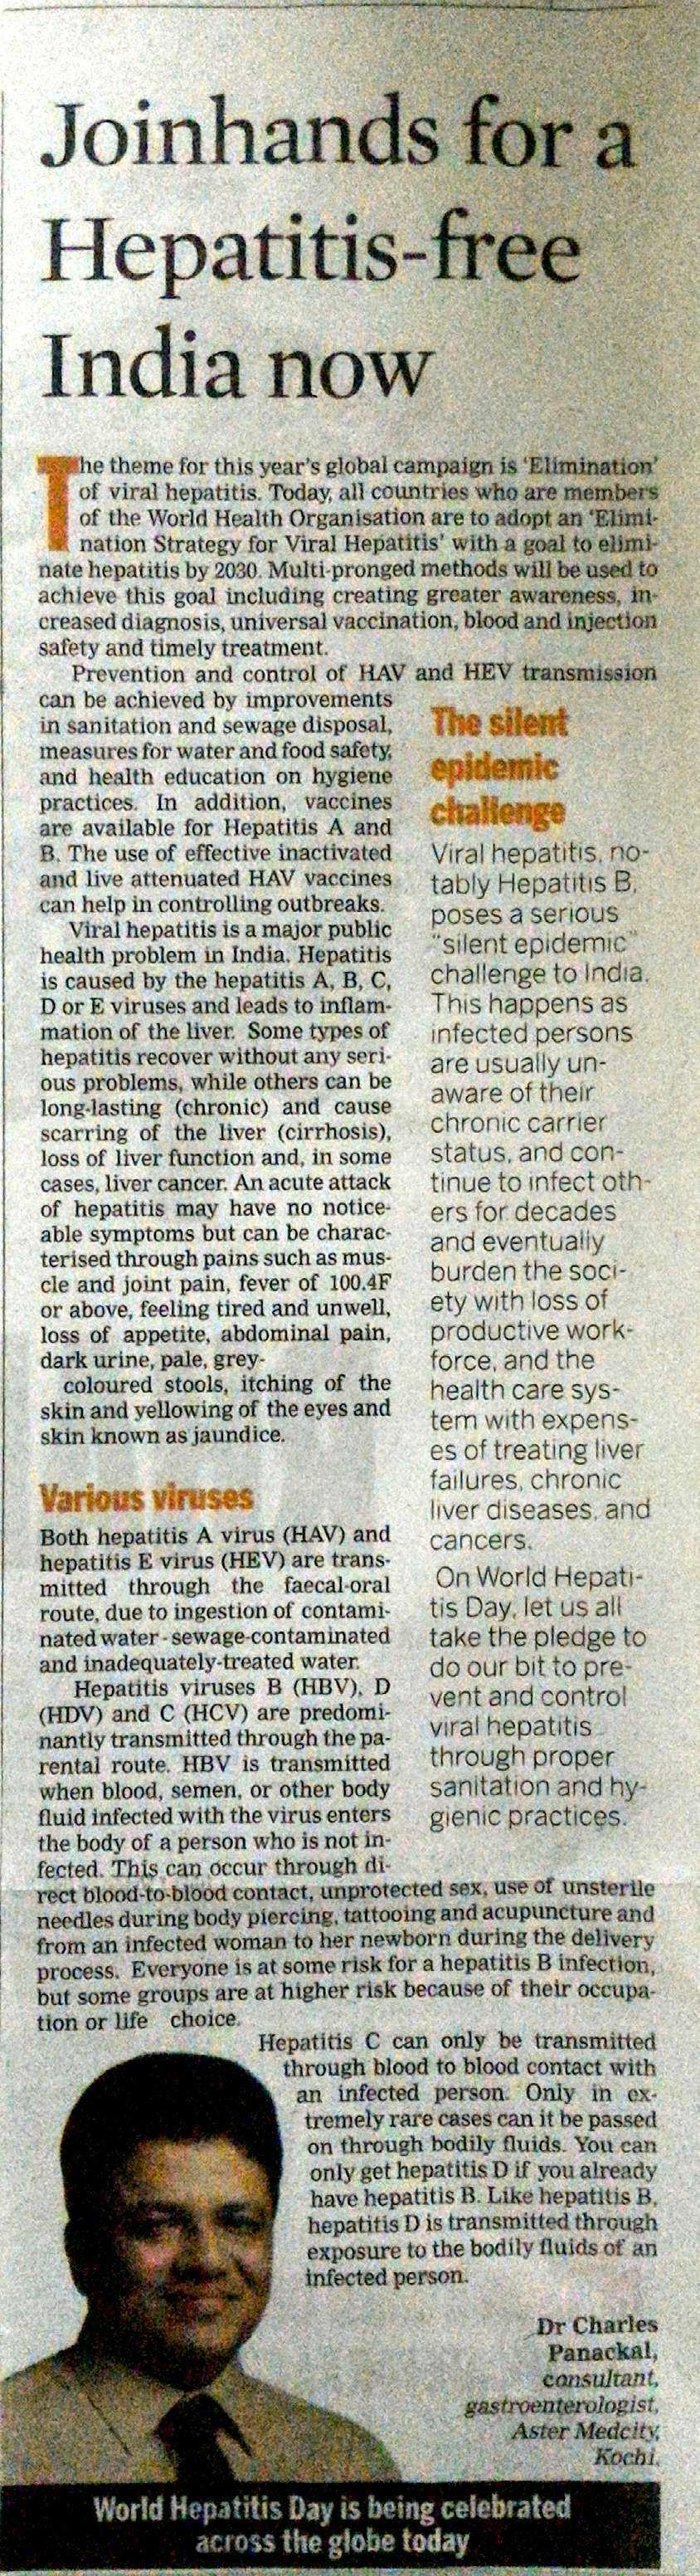 Indian_express_28.7.16_PG563